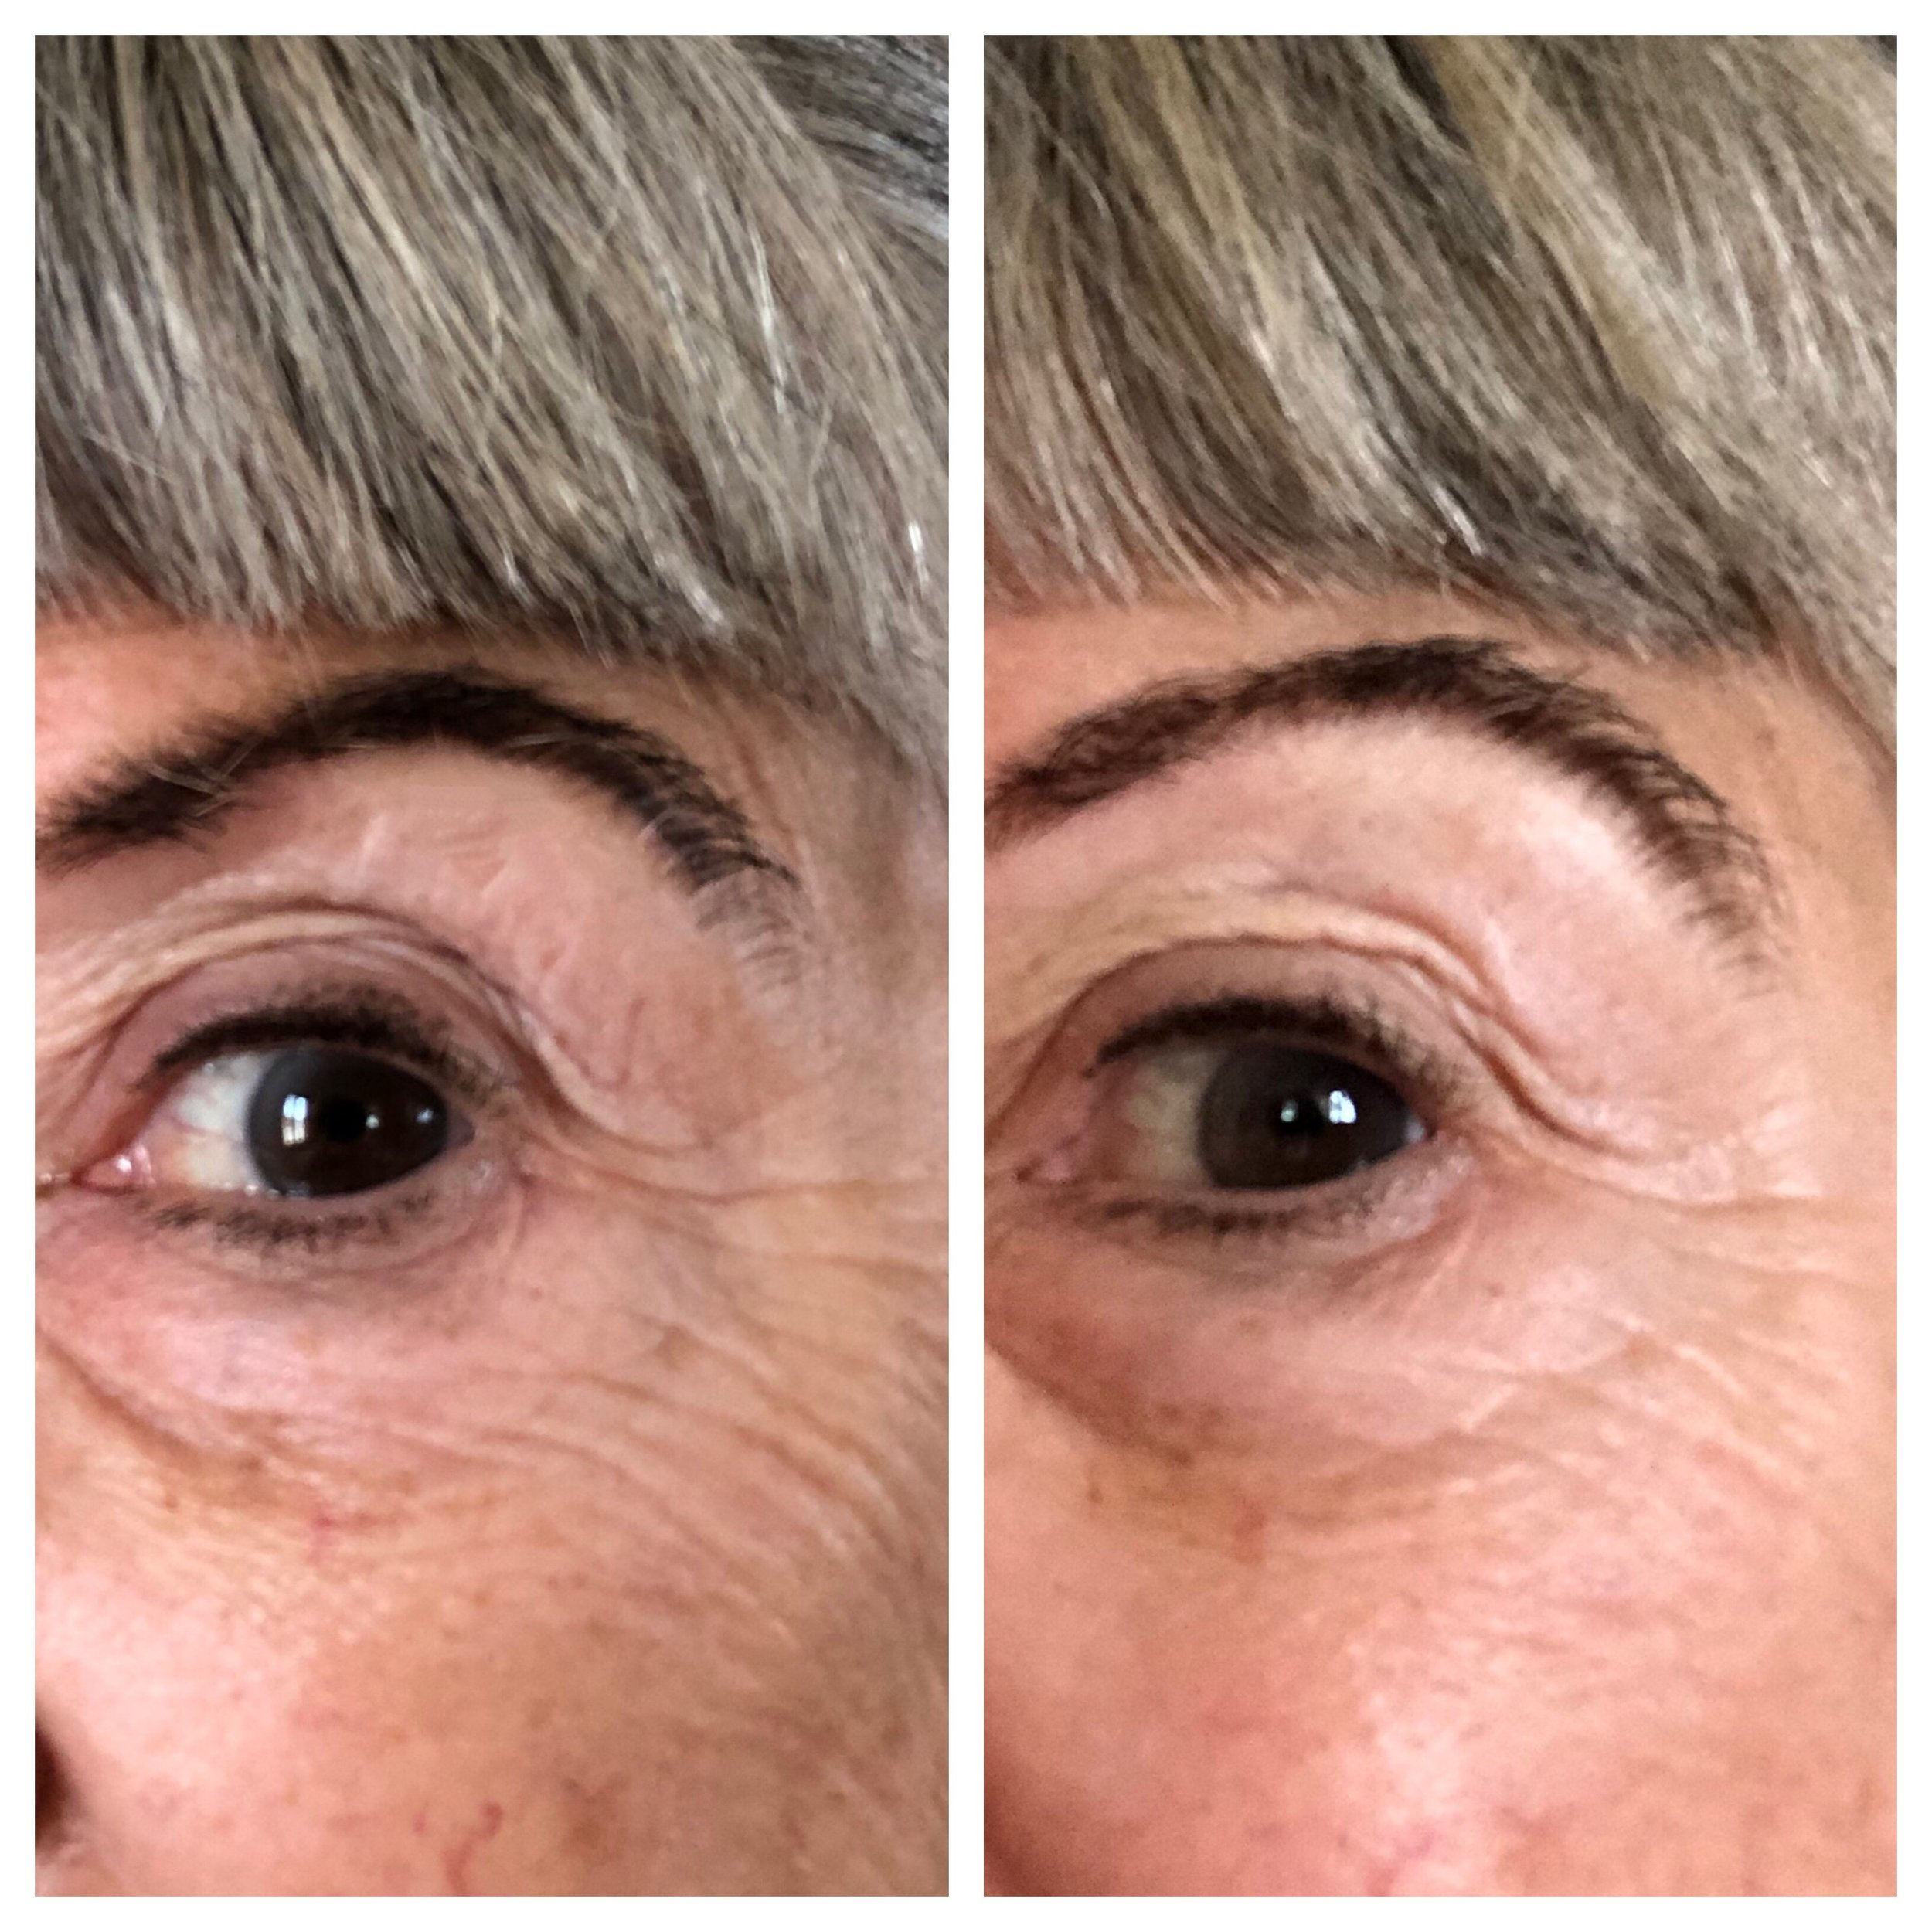 Before and After Shots of my seven day PRAI eye creme & serum trial.